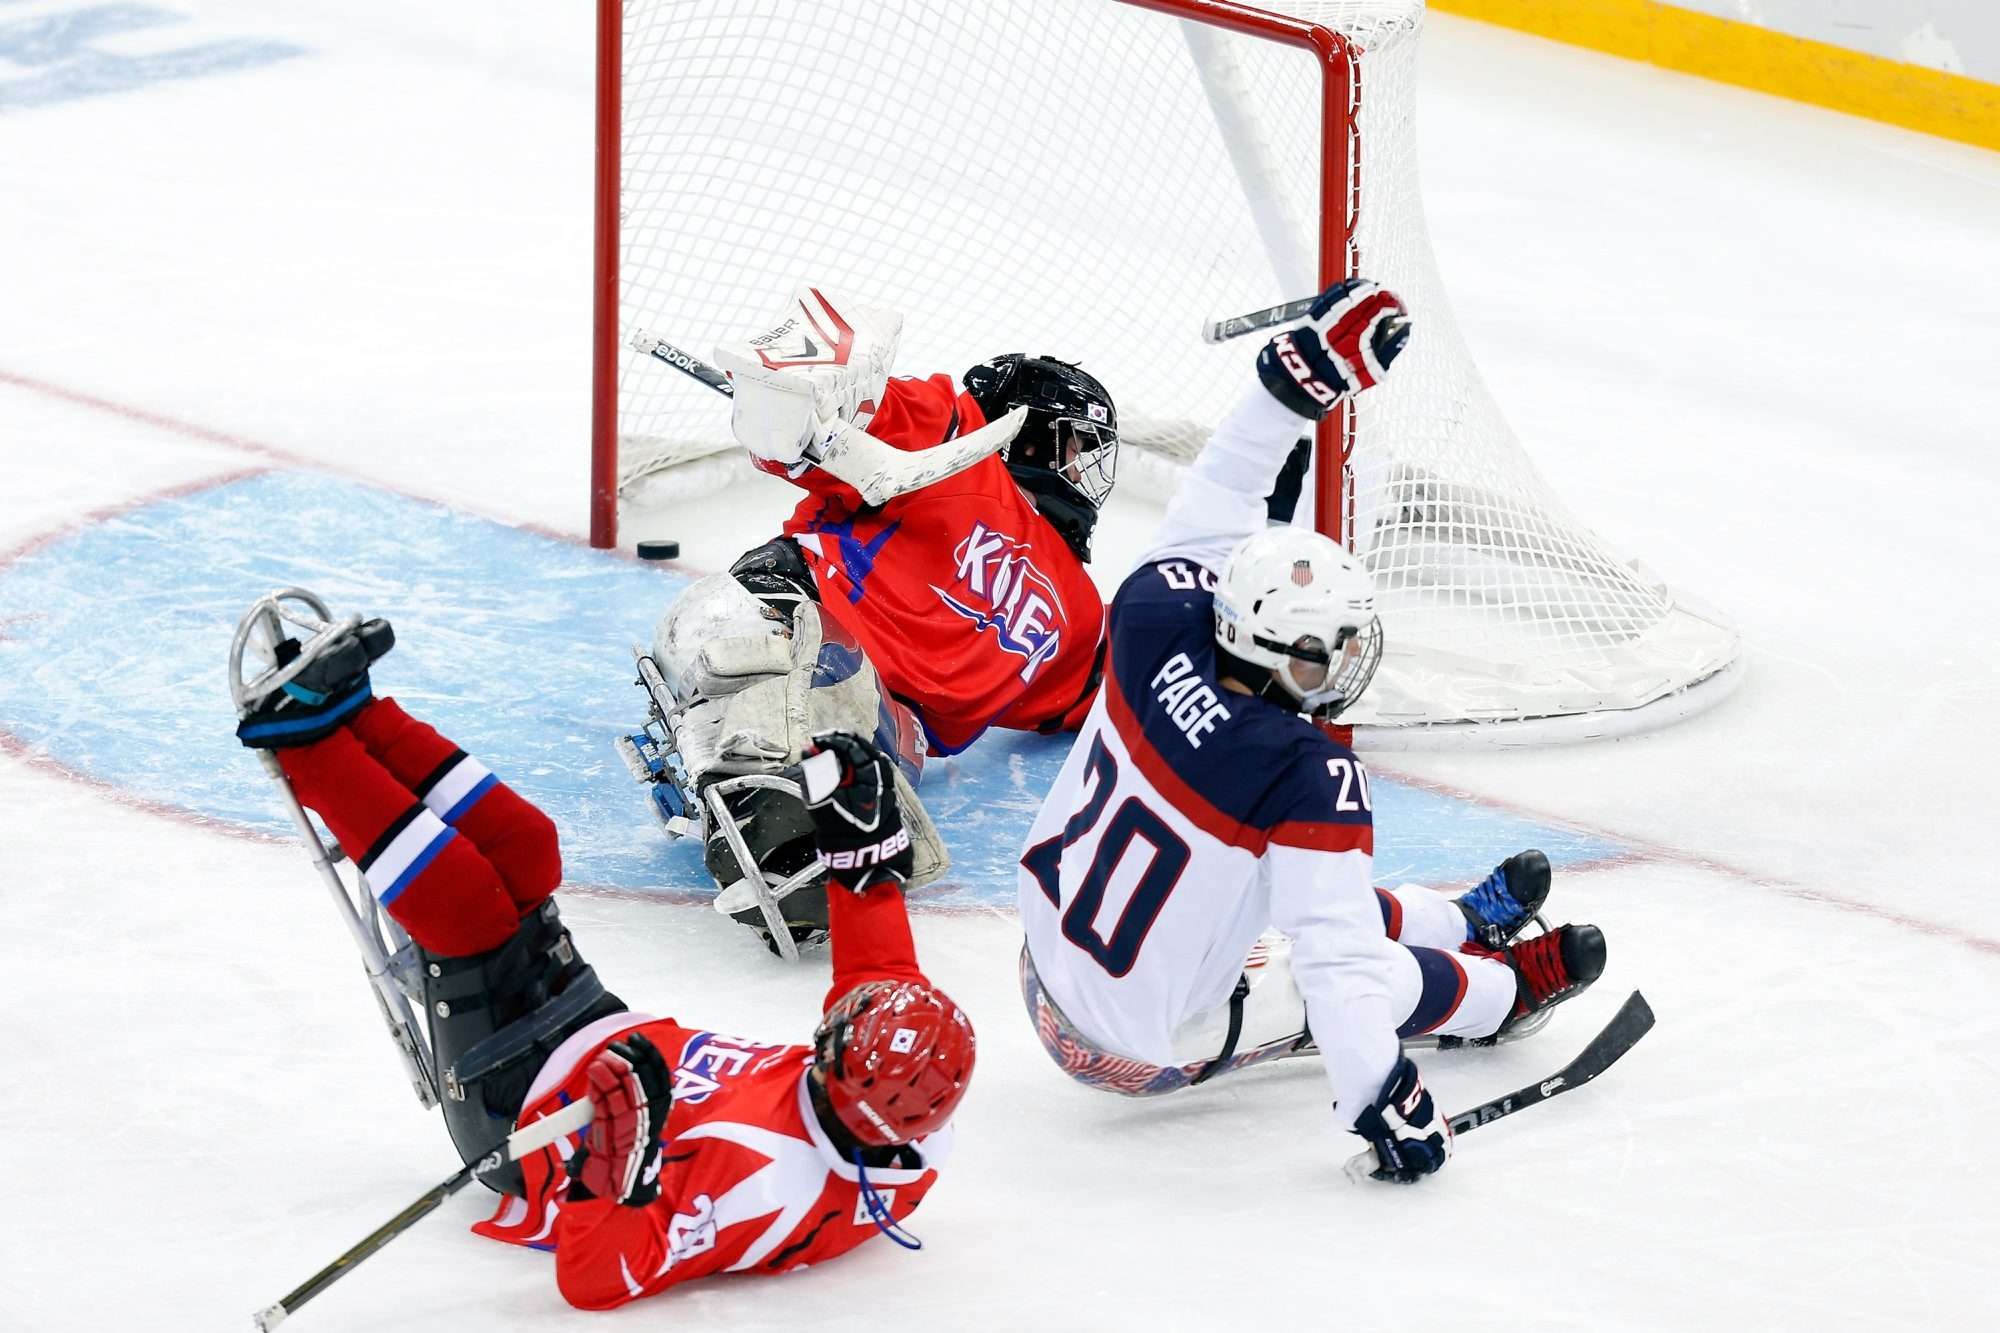 Adam Page of Lancaster, scoring against Korea in a 2014 game, will be playing in his fifth Sledge Hockey World Championships.